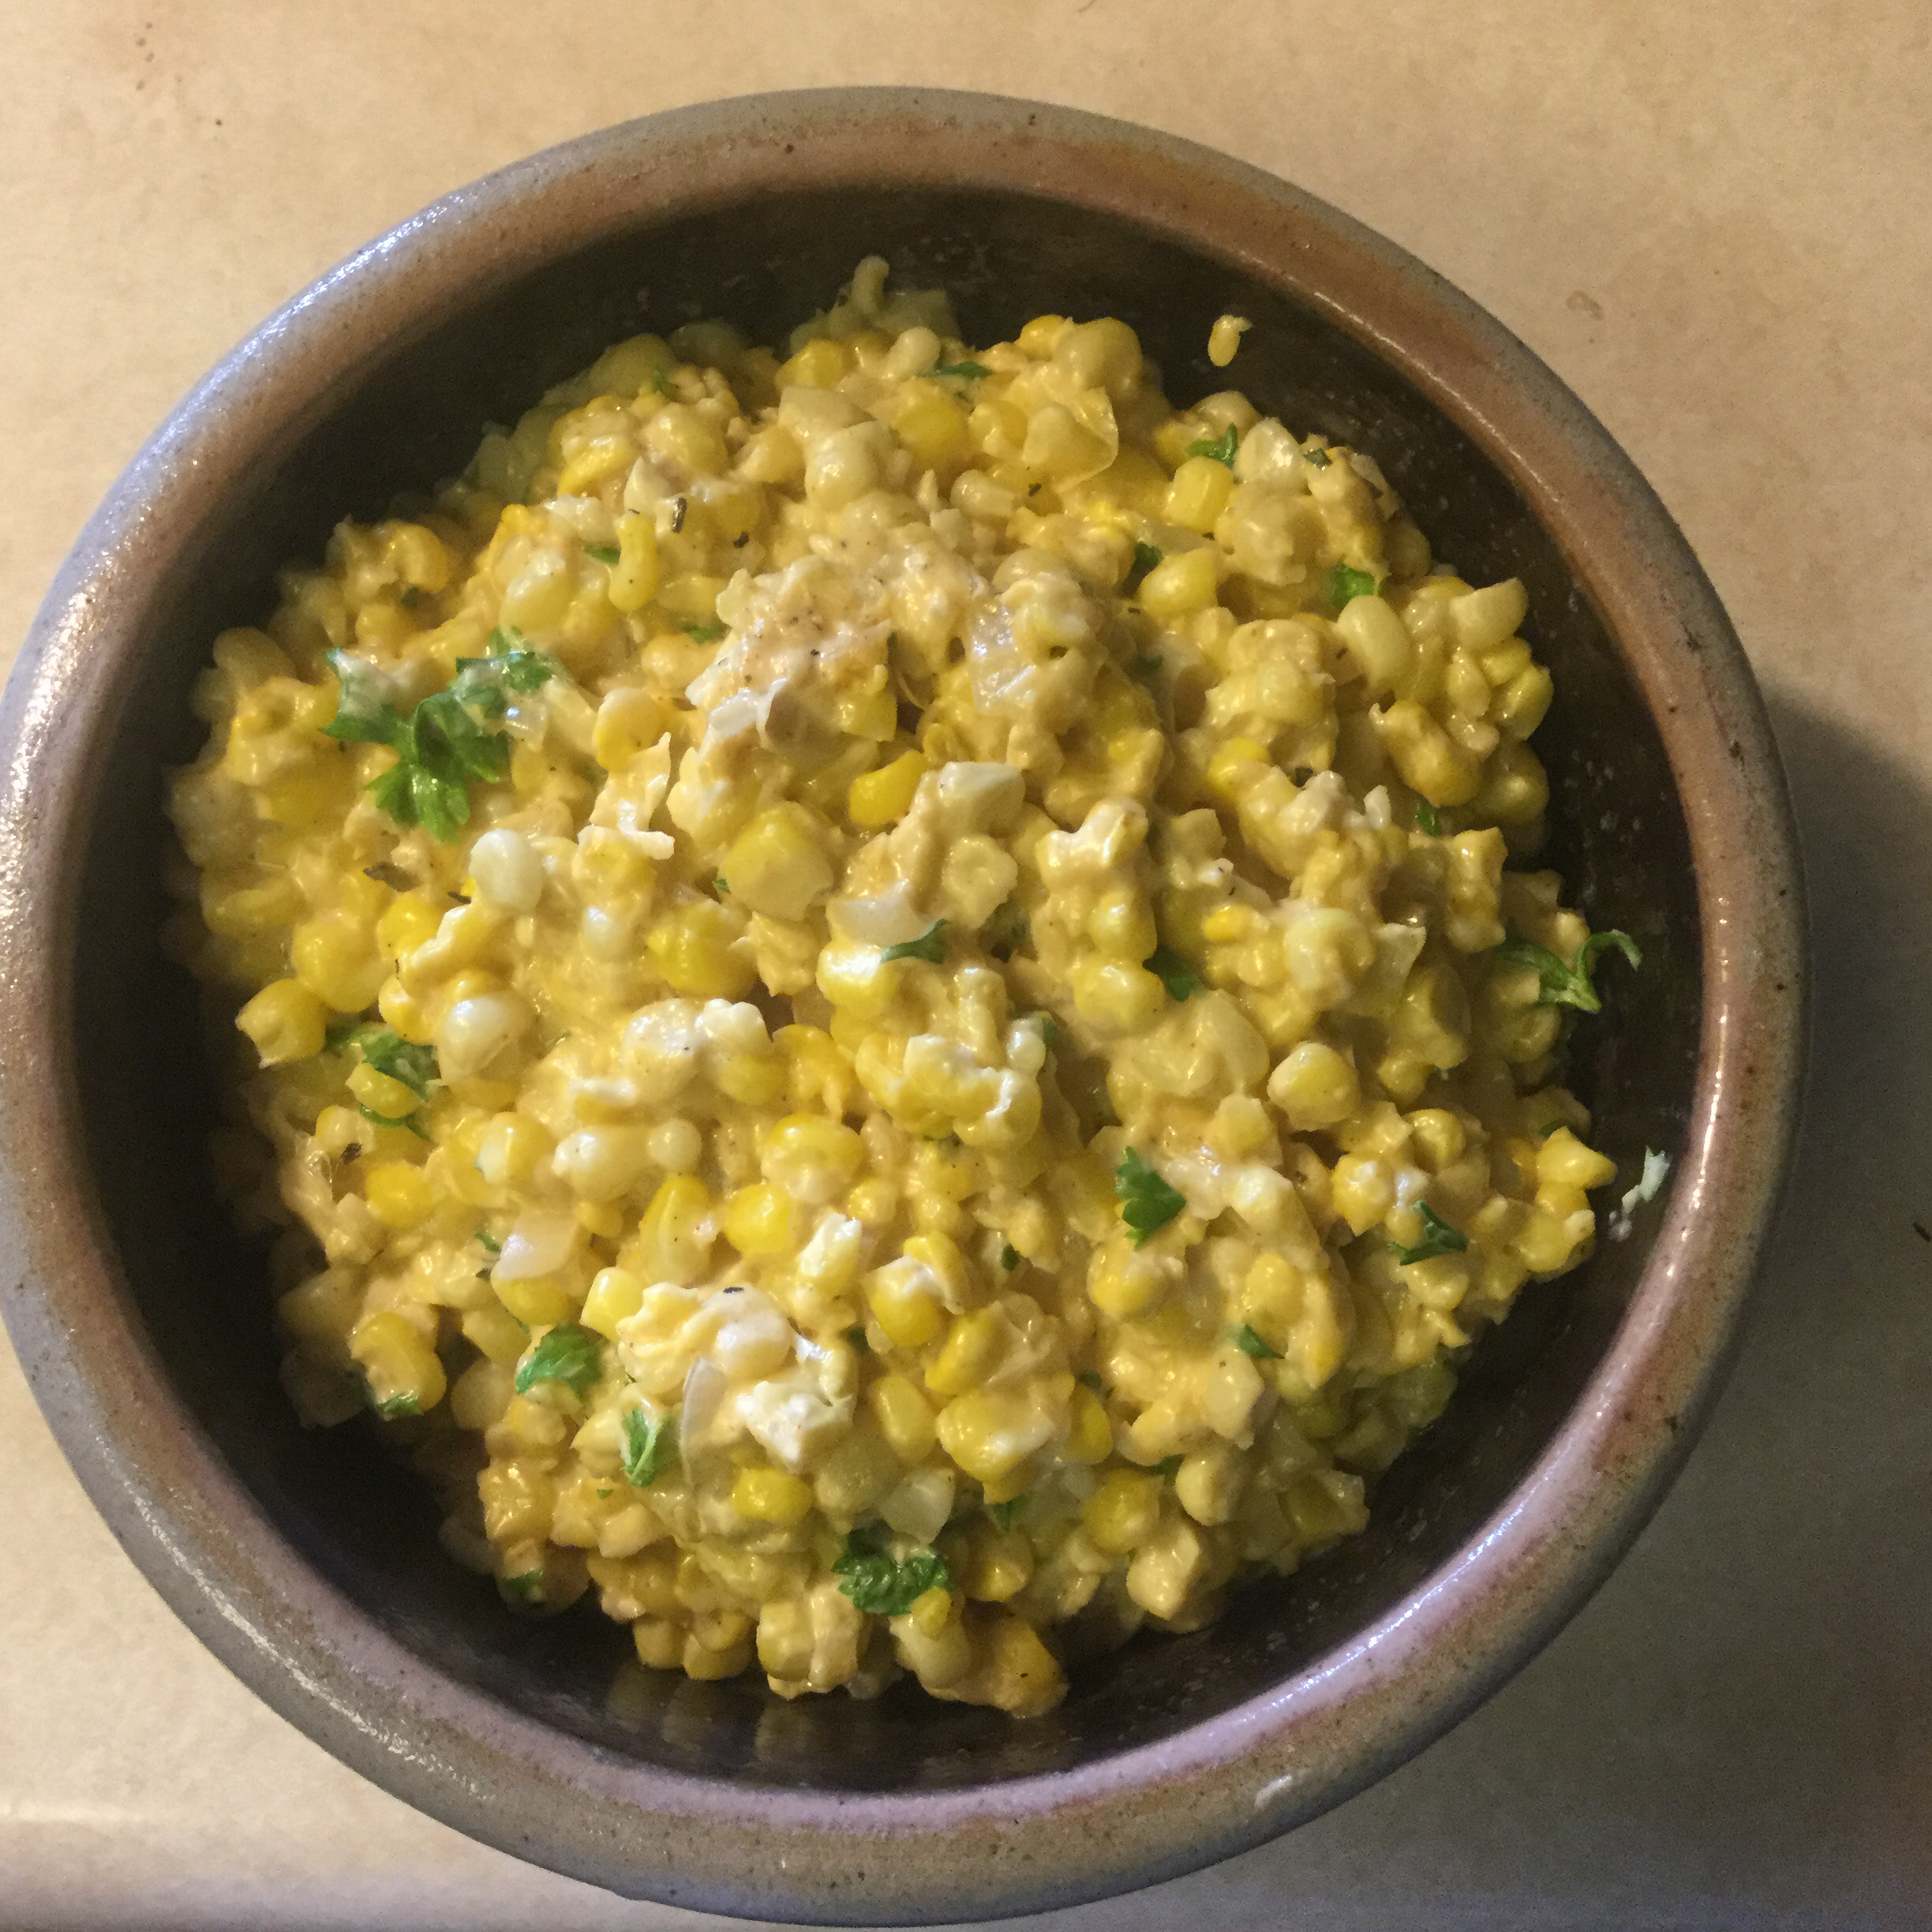 """Cheesy corn is a popular side at Kansas City BBQ joints. """"Really tasty recipe and I like the crunch of the corn once it's chilled & gets cold!"""" says LAA. """"I use Cajun seasoning instead of Creole b/c it's something I keep on hand in my pantry. Highly recommend."""""""